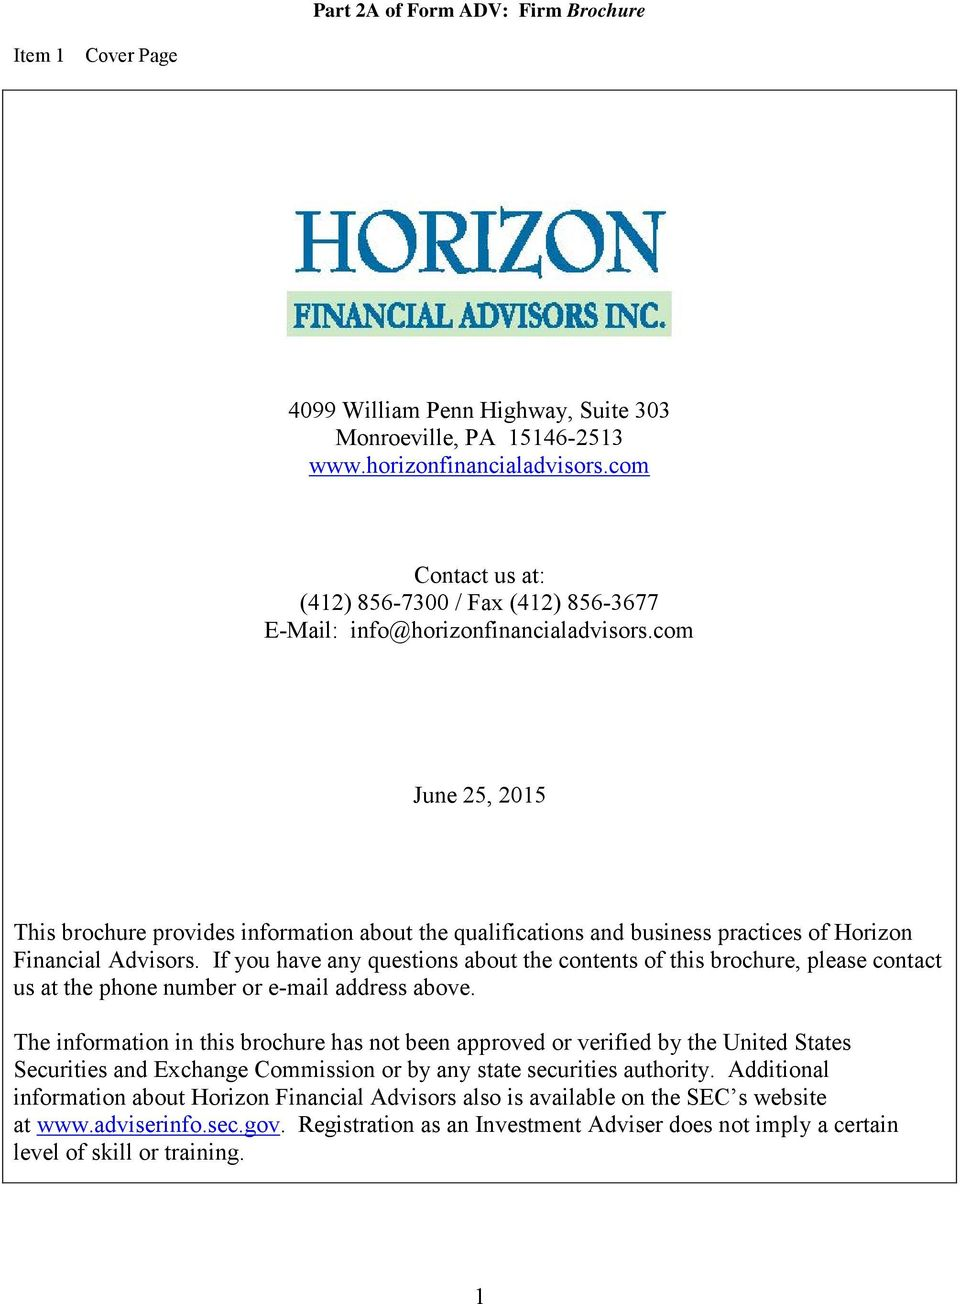 com June 25, 2015 This brochure provides information about the qualifications and business practices of Horizon Financial Advisors.